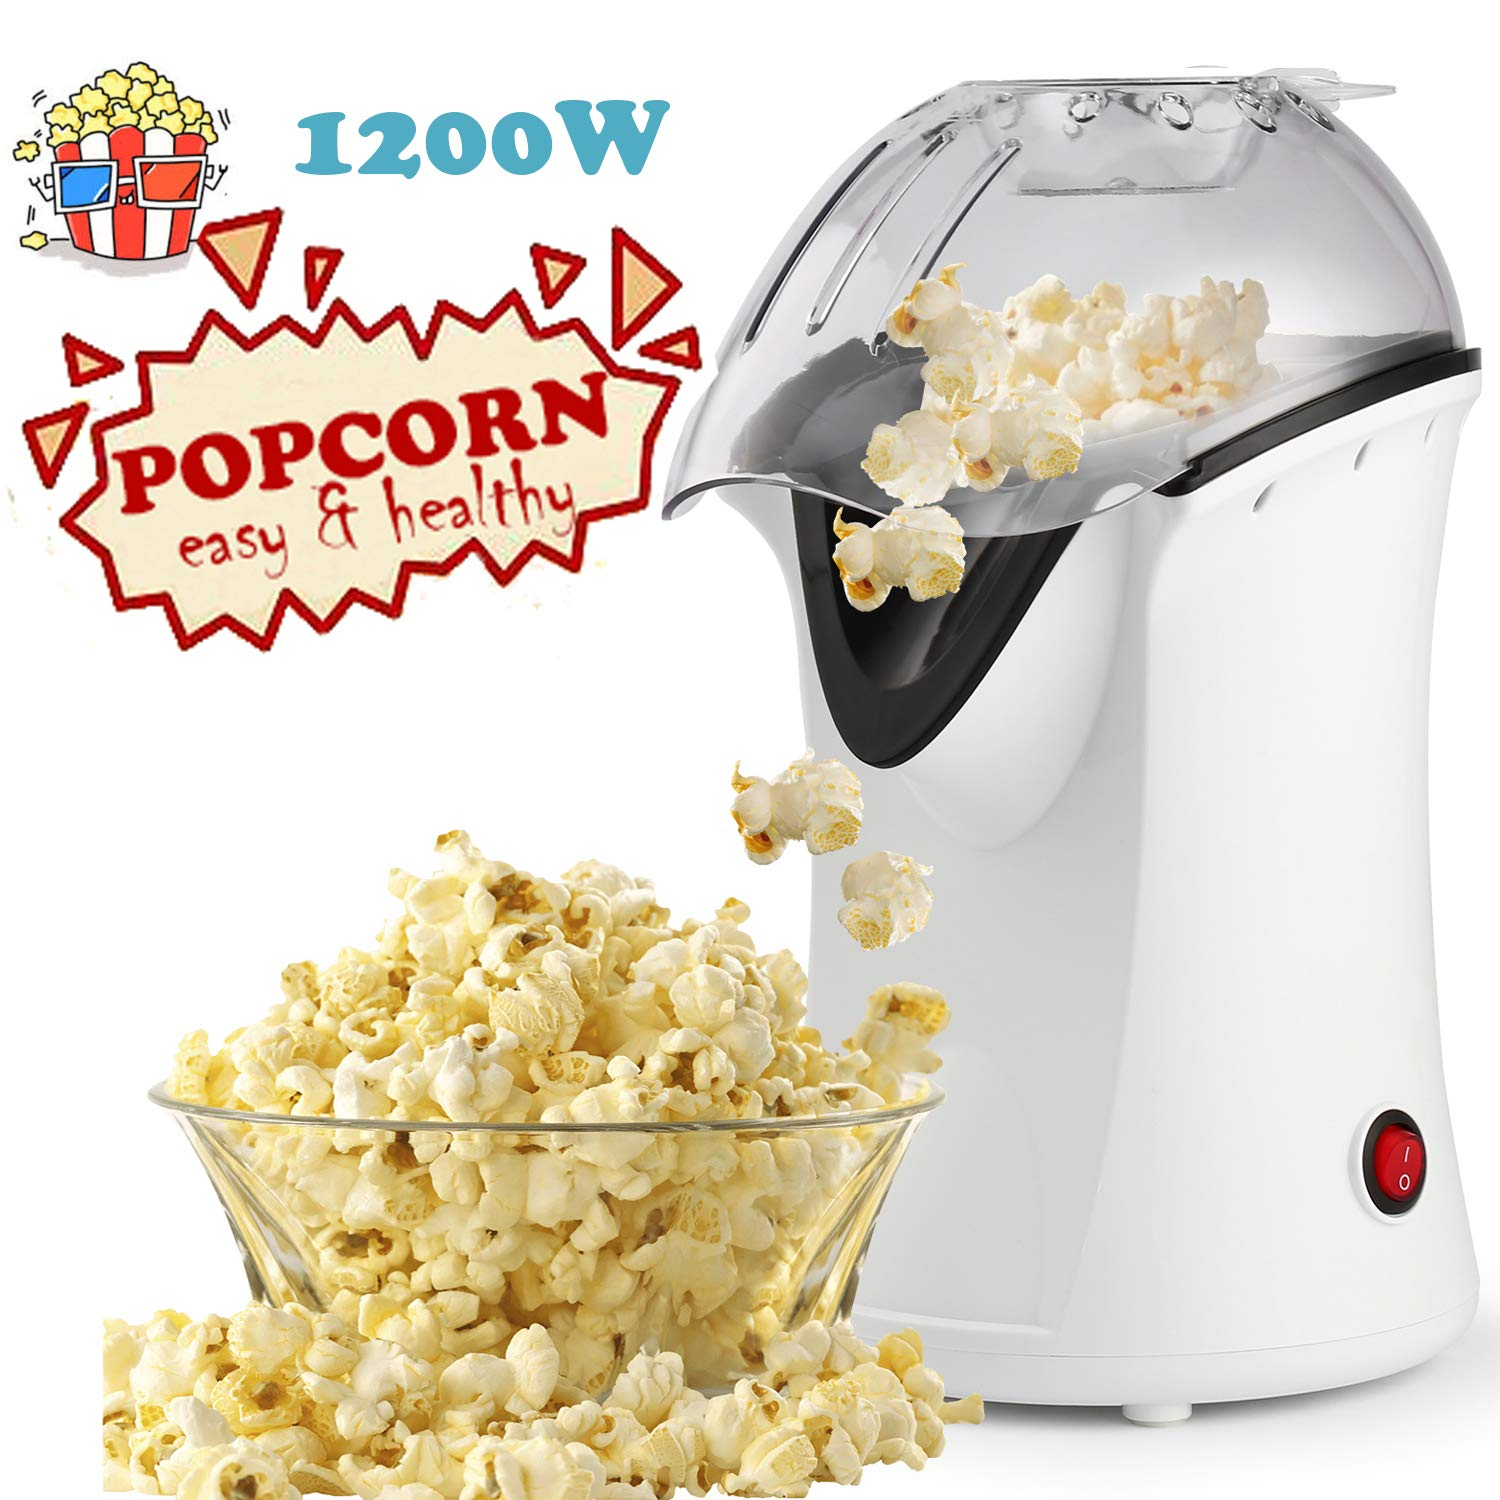 Popcorn Machine 1200W Hot Air Popcorn Popper Electric Maker for Home with On Off Switch, No Oil Needed (White) by OppsDecor